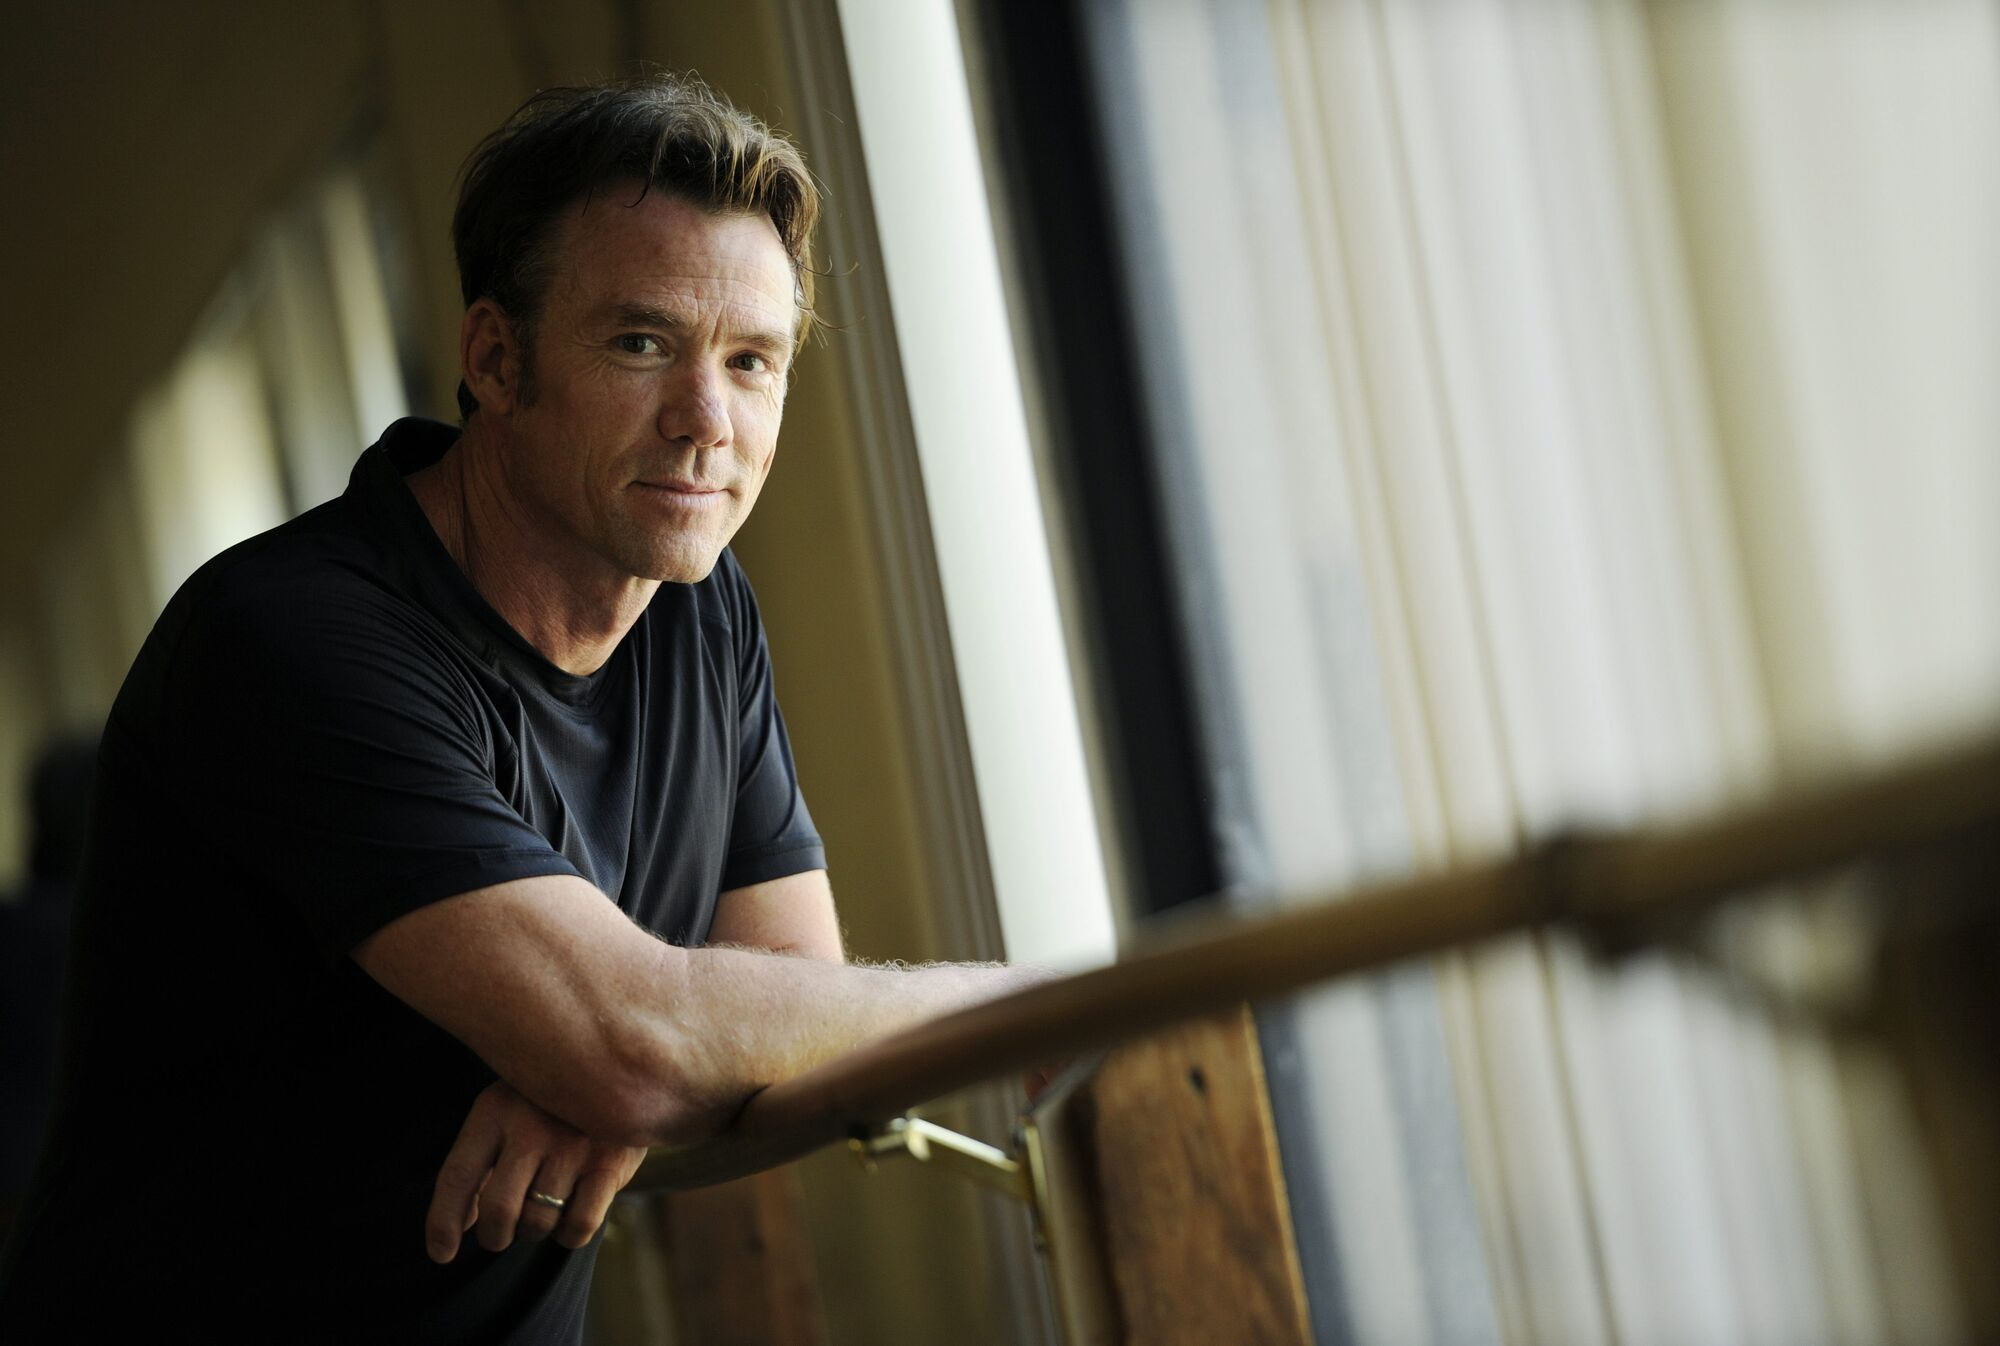 terry notary wikiterry notary actor, terry notary kong, terry notary warcraft, terry notary, terry notary grommash, terry notary imdb, terry notary net worth, terry notary grommash hellscream, terry notary grom, terry notary grom hellscream, terry notary twitter, terry notary ape, terry notary rocket, terry notary planet of the apes, terry notary the hobbit, terry notary facebook, terry notary contact, terry notary wiki, terry notary gay, terry notary shirtless